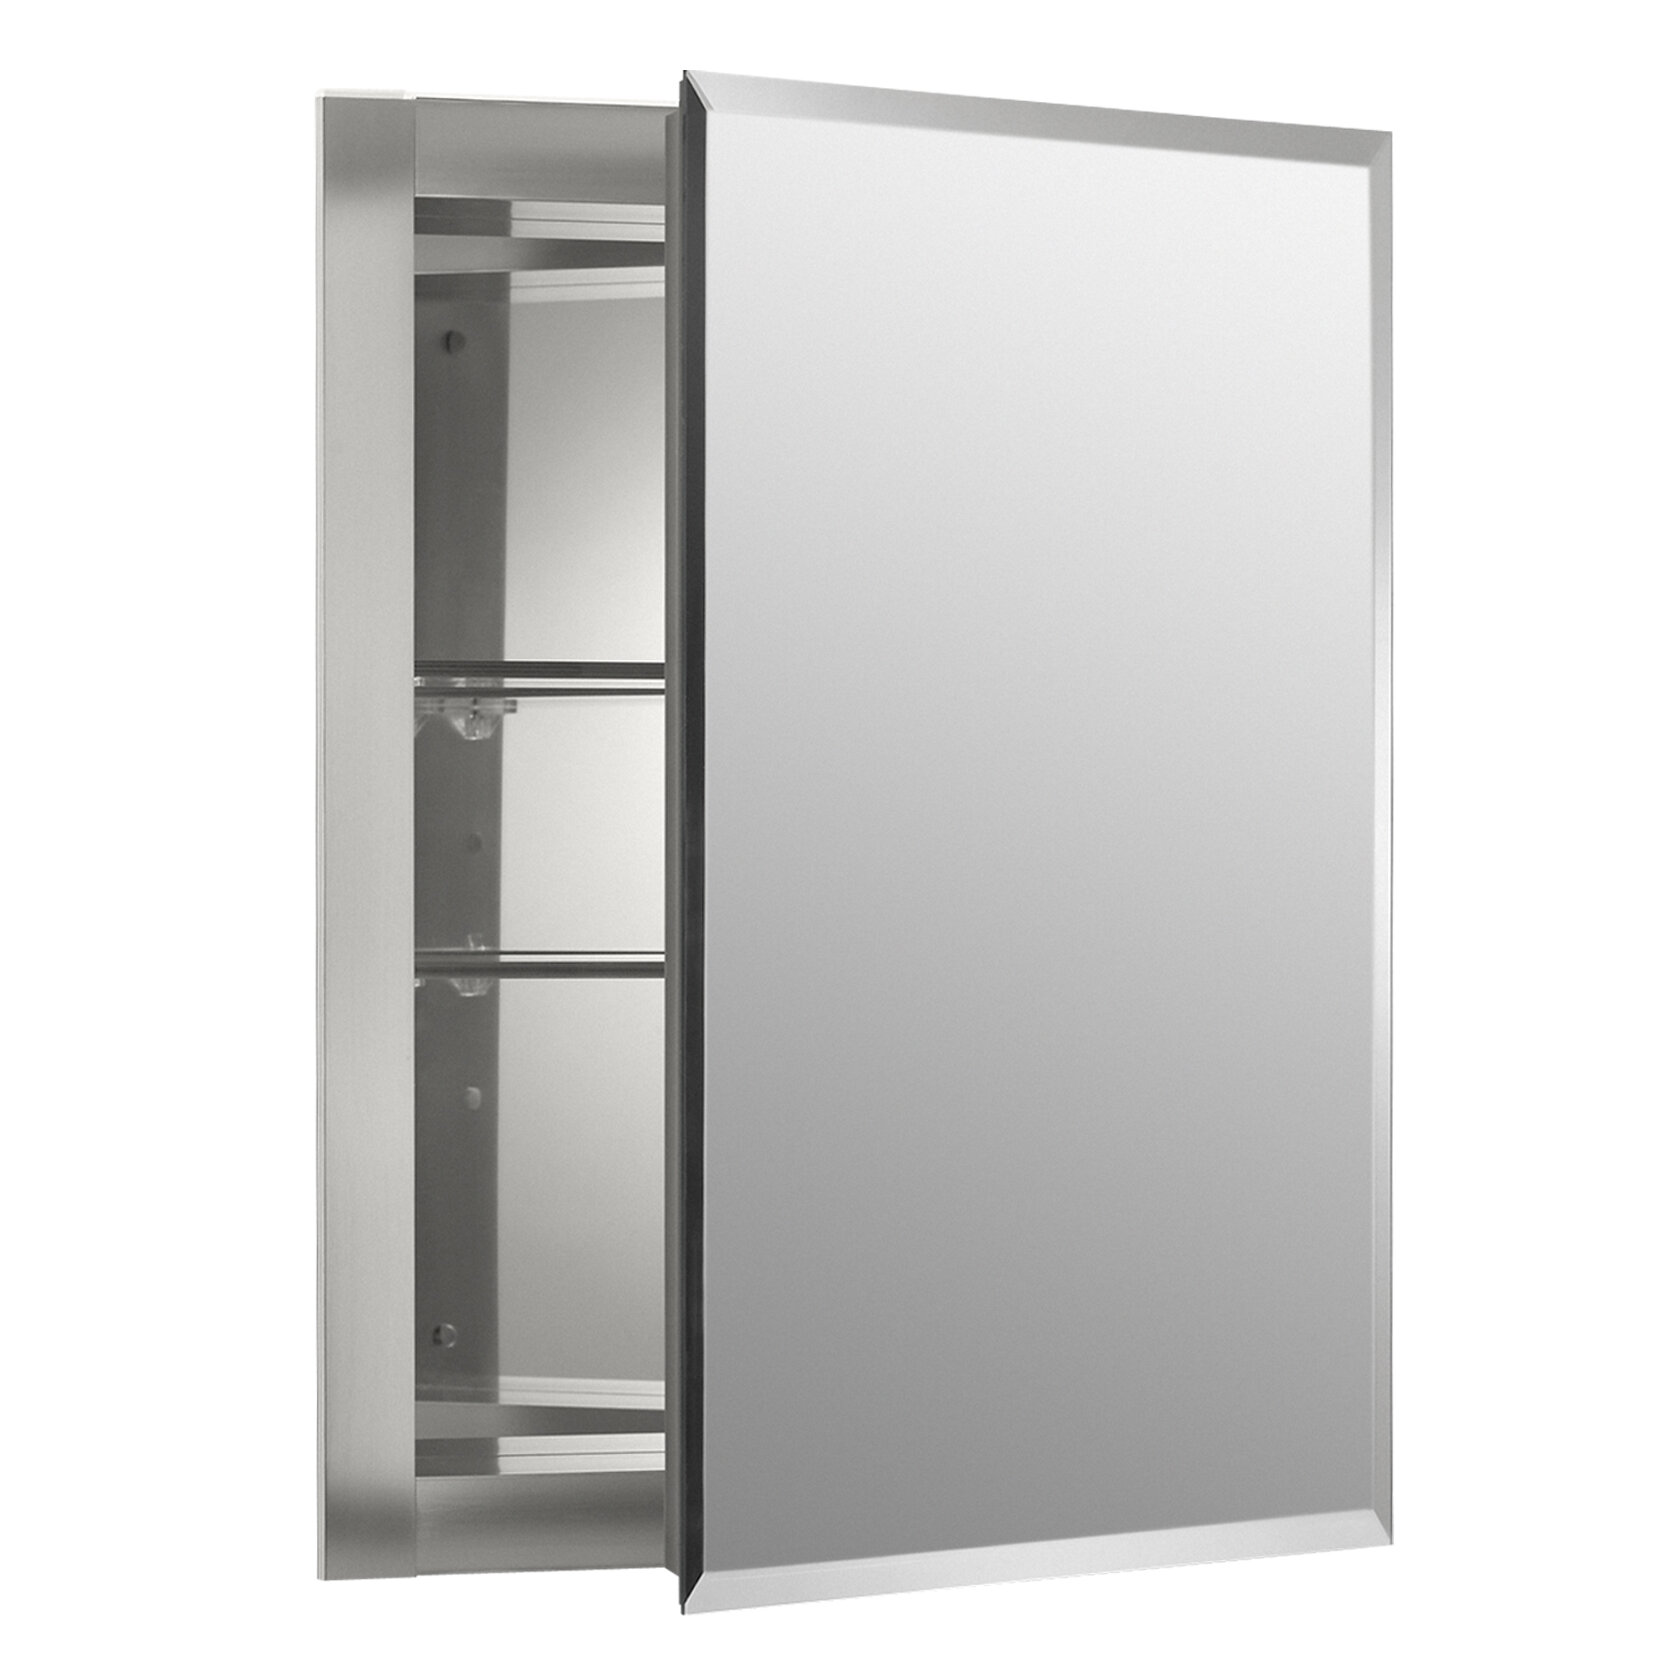 cabinets cabinethero bathroom medicine recessed products robern cabinet